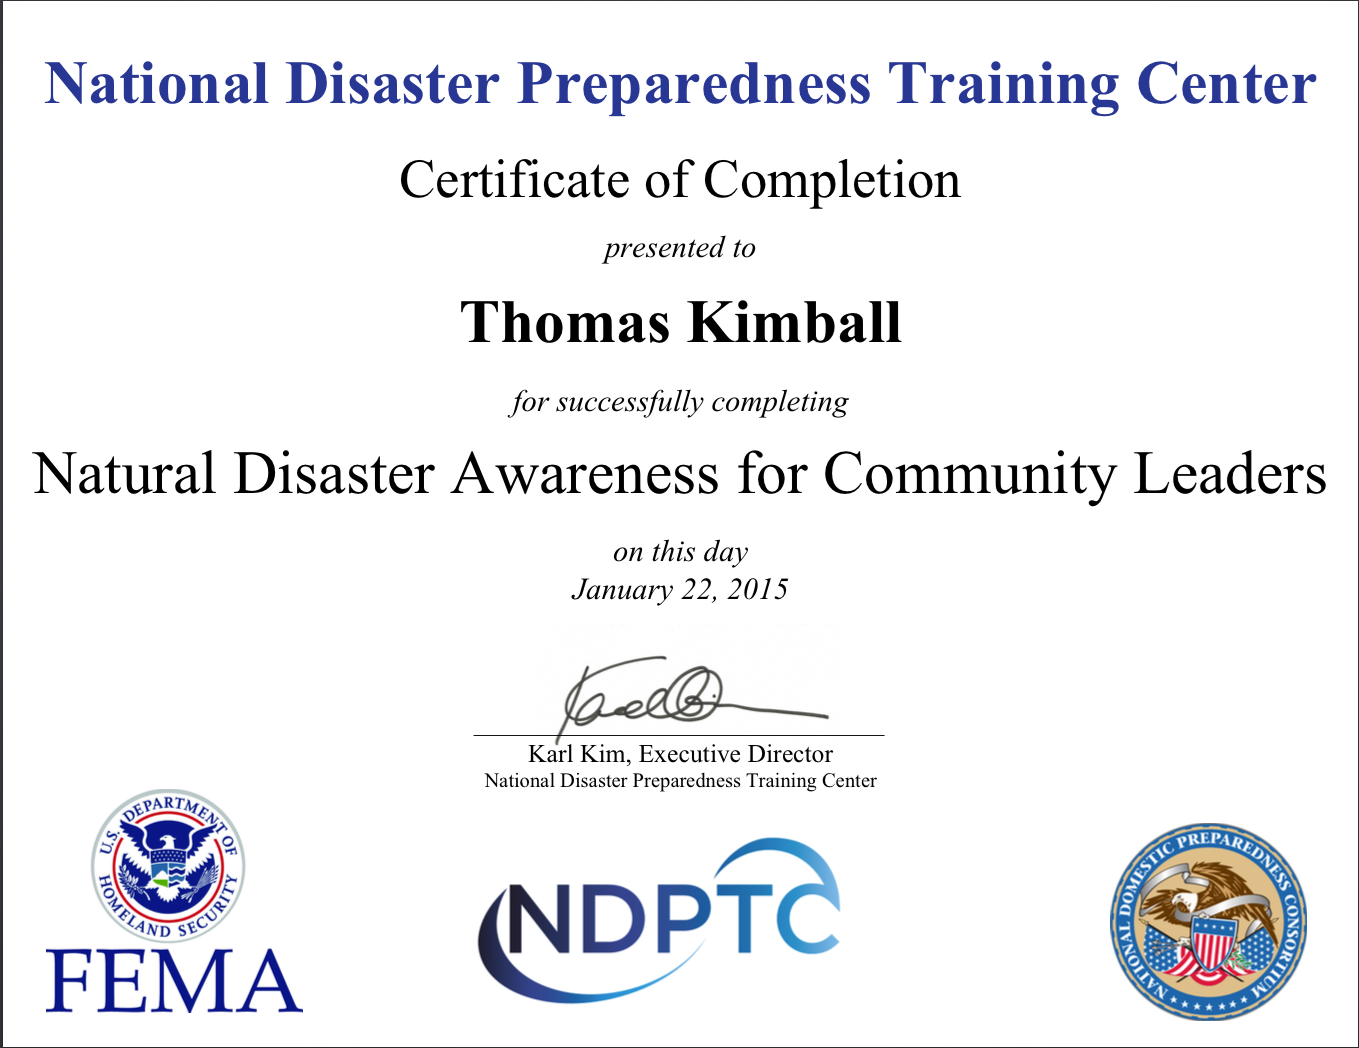 AWR-310 Natural Disaster Awareness for Community Leaders